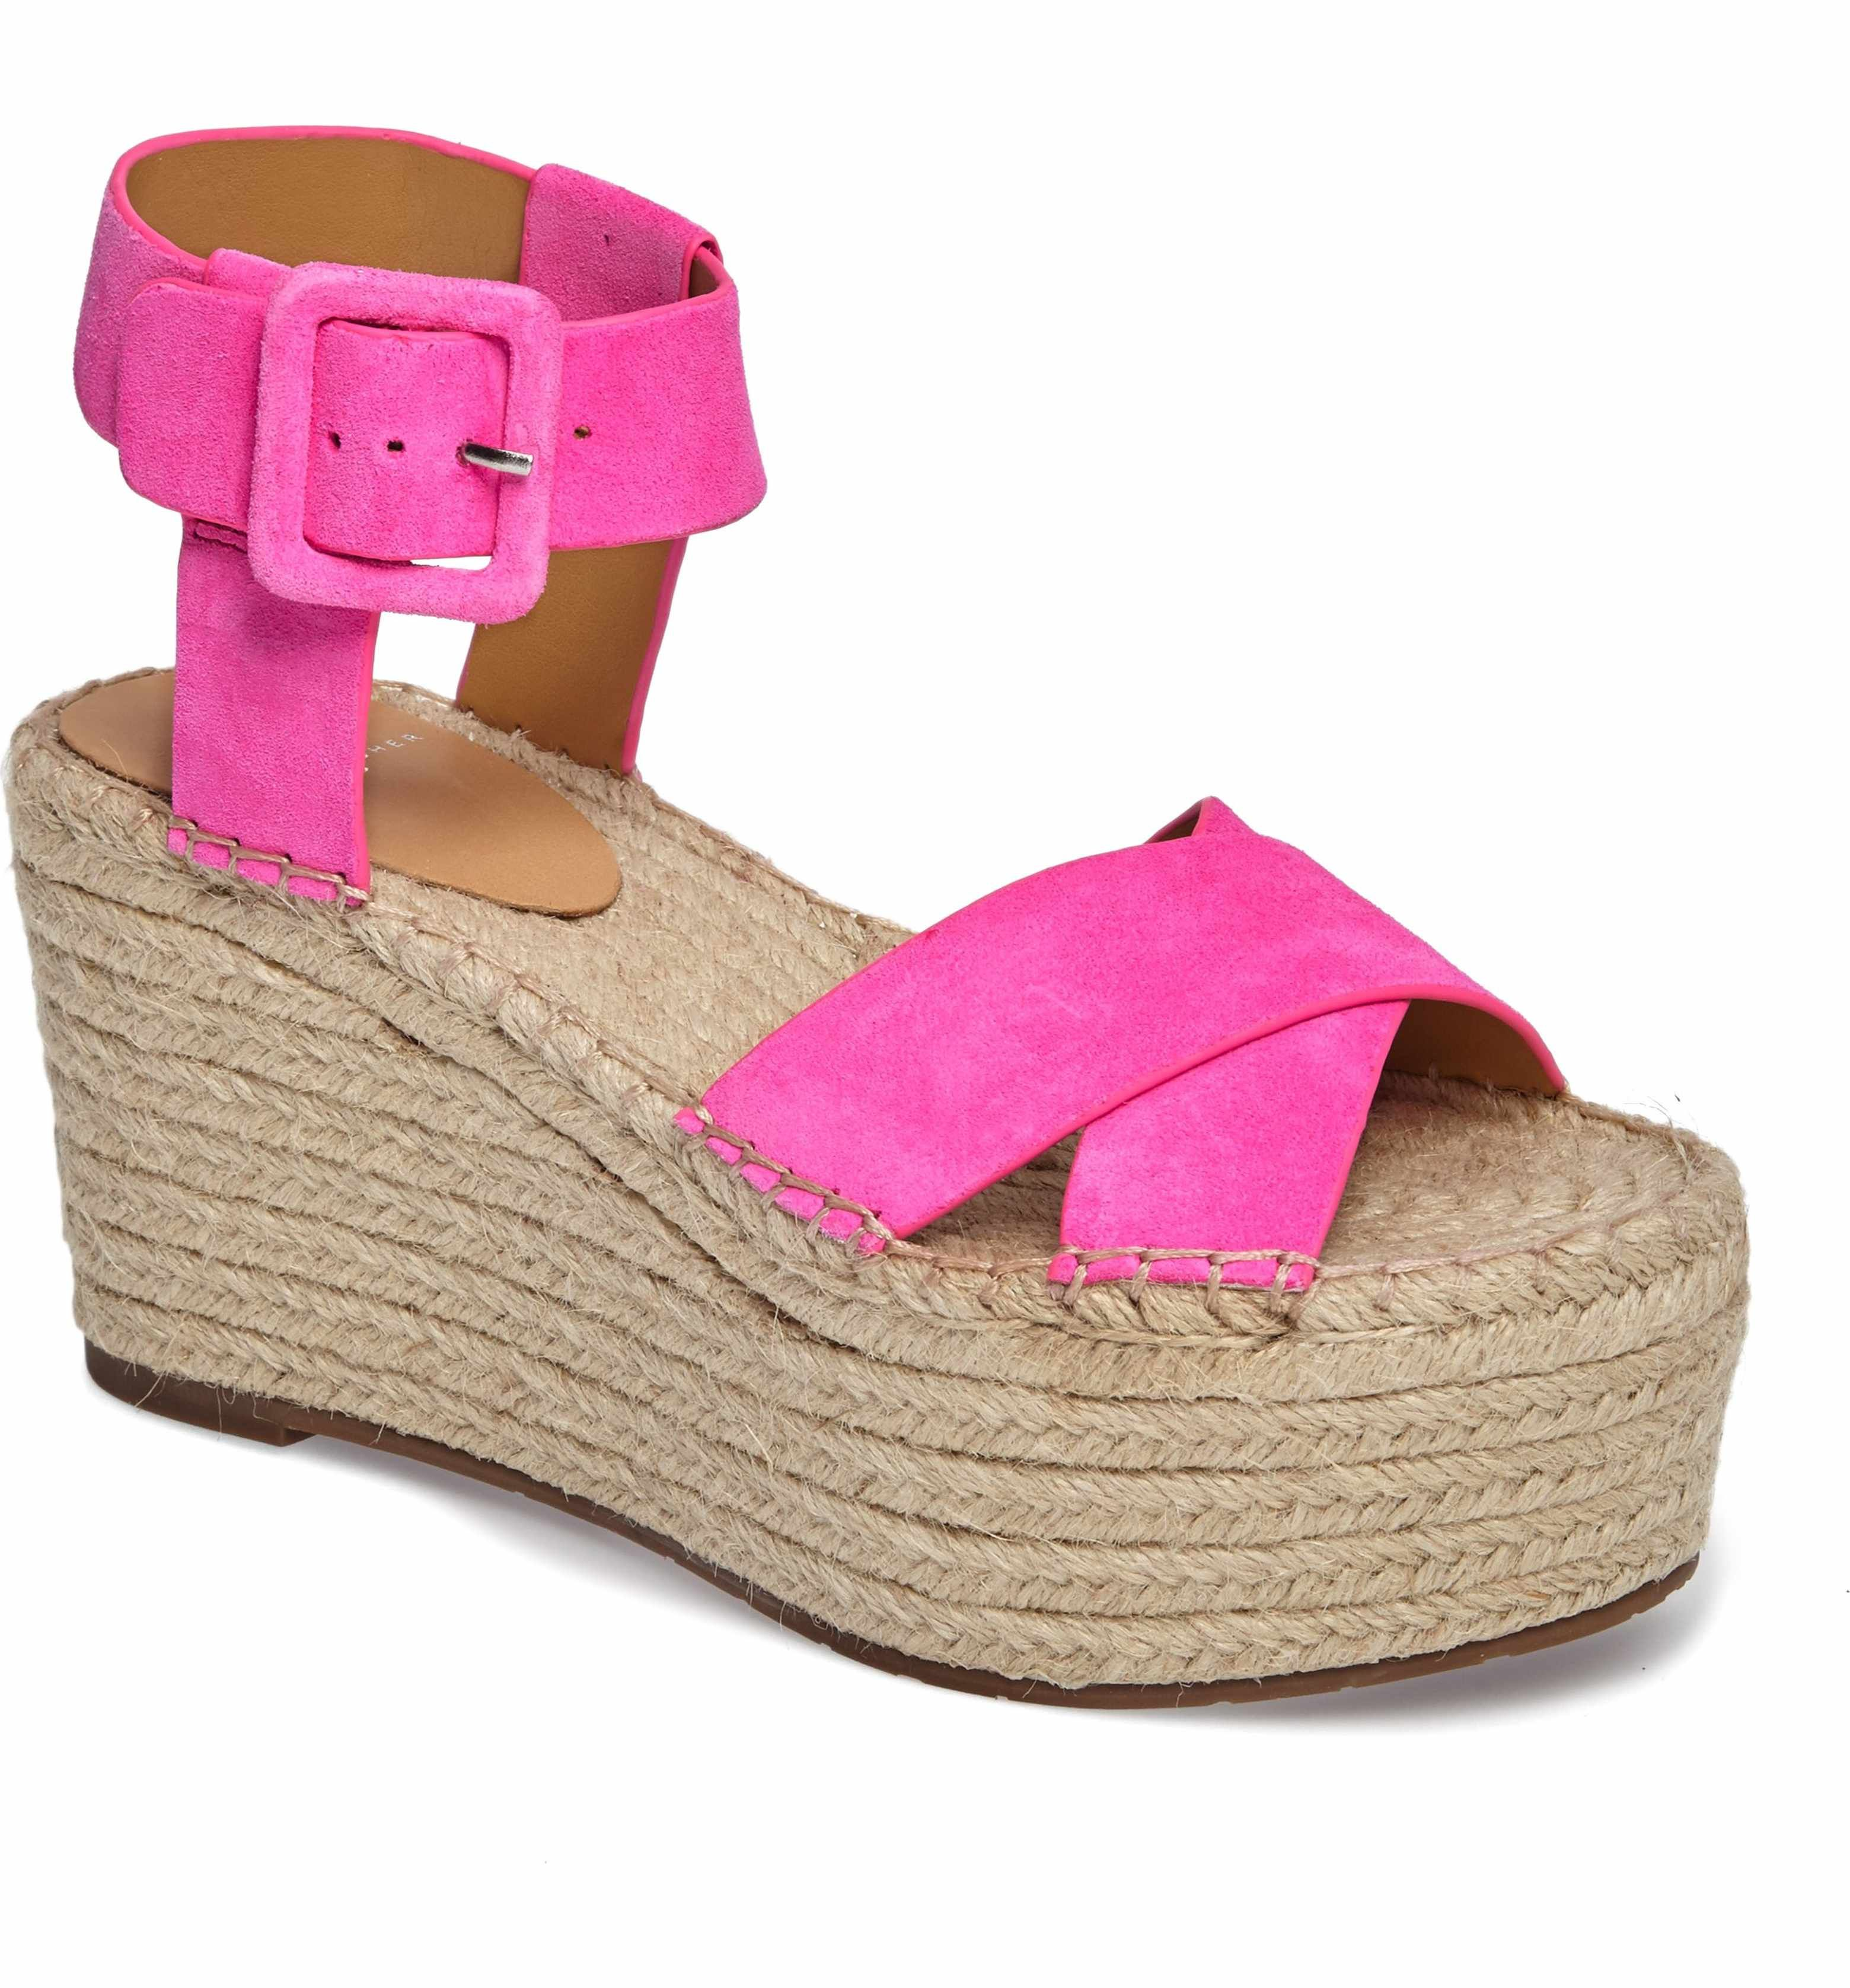 05a8279f733 Main Image - Marc Fisher LTD  Randall  Platform Wedge (Women ...